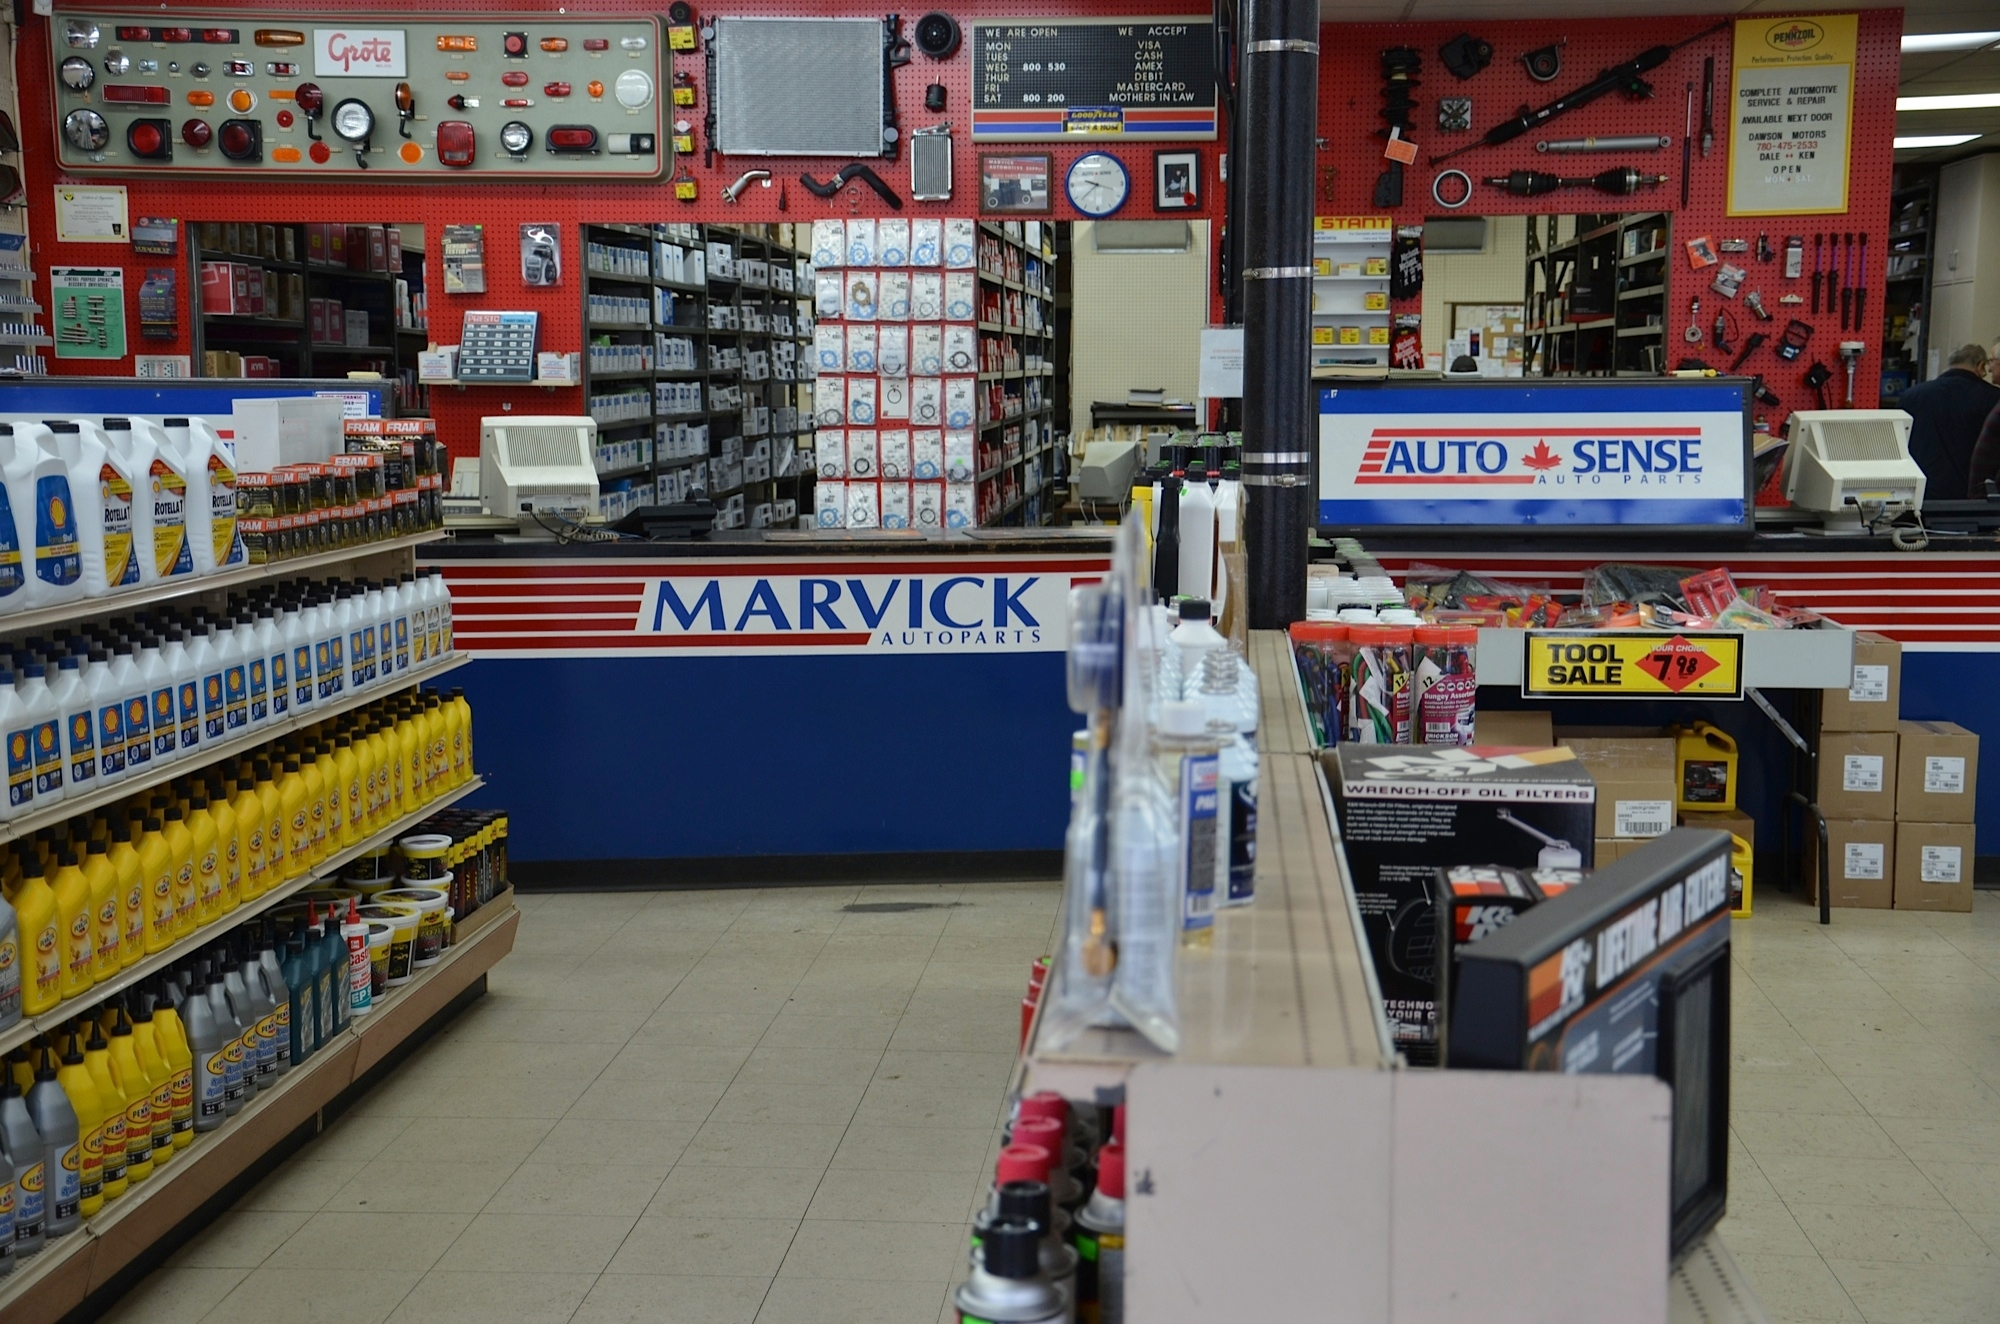 Marvick Automotive Supply Ltd